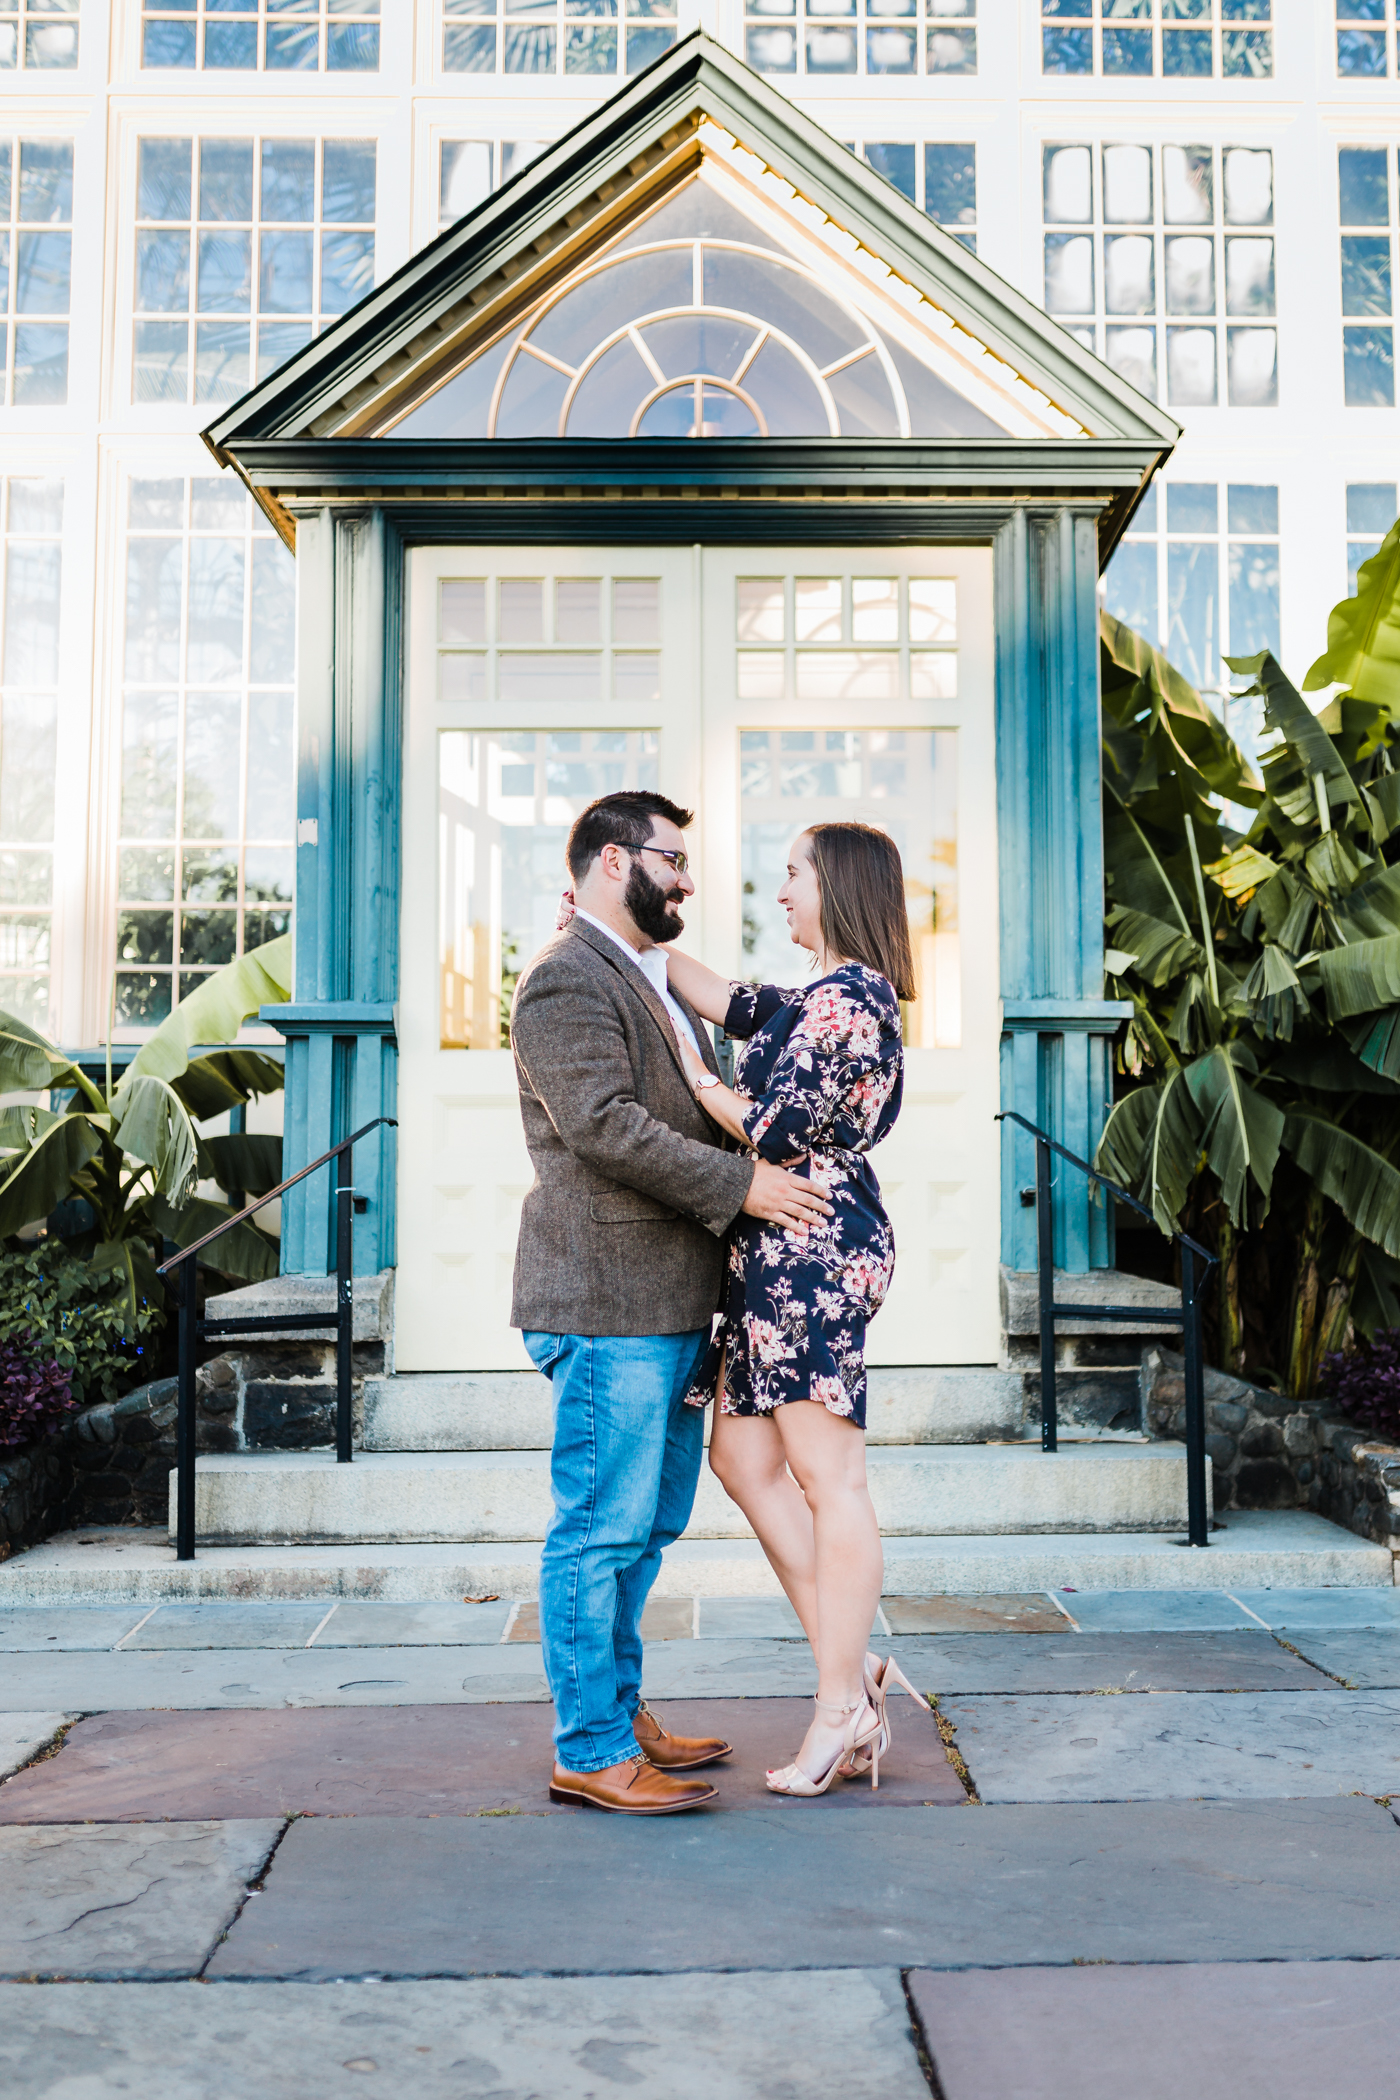 adorable couple engagement photos - top rated authentic photographer in Maryland